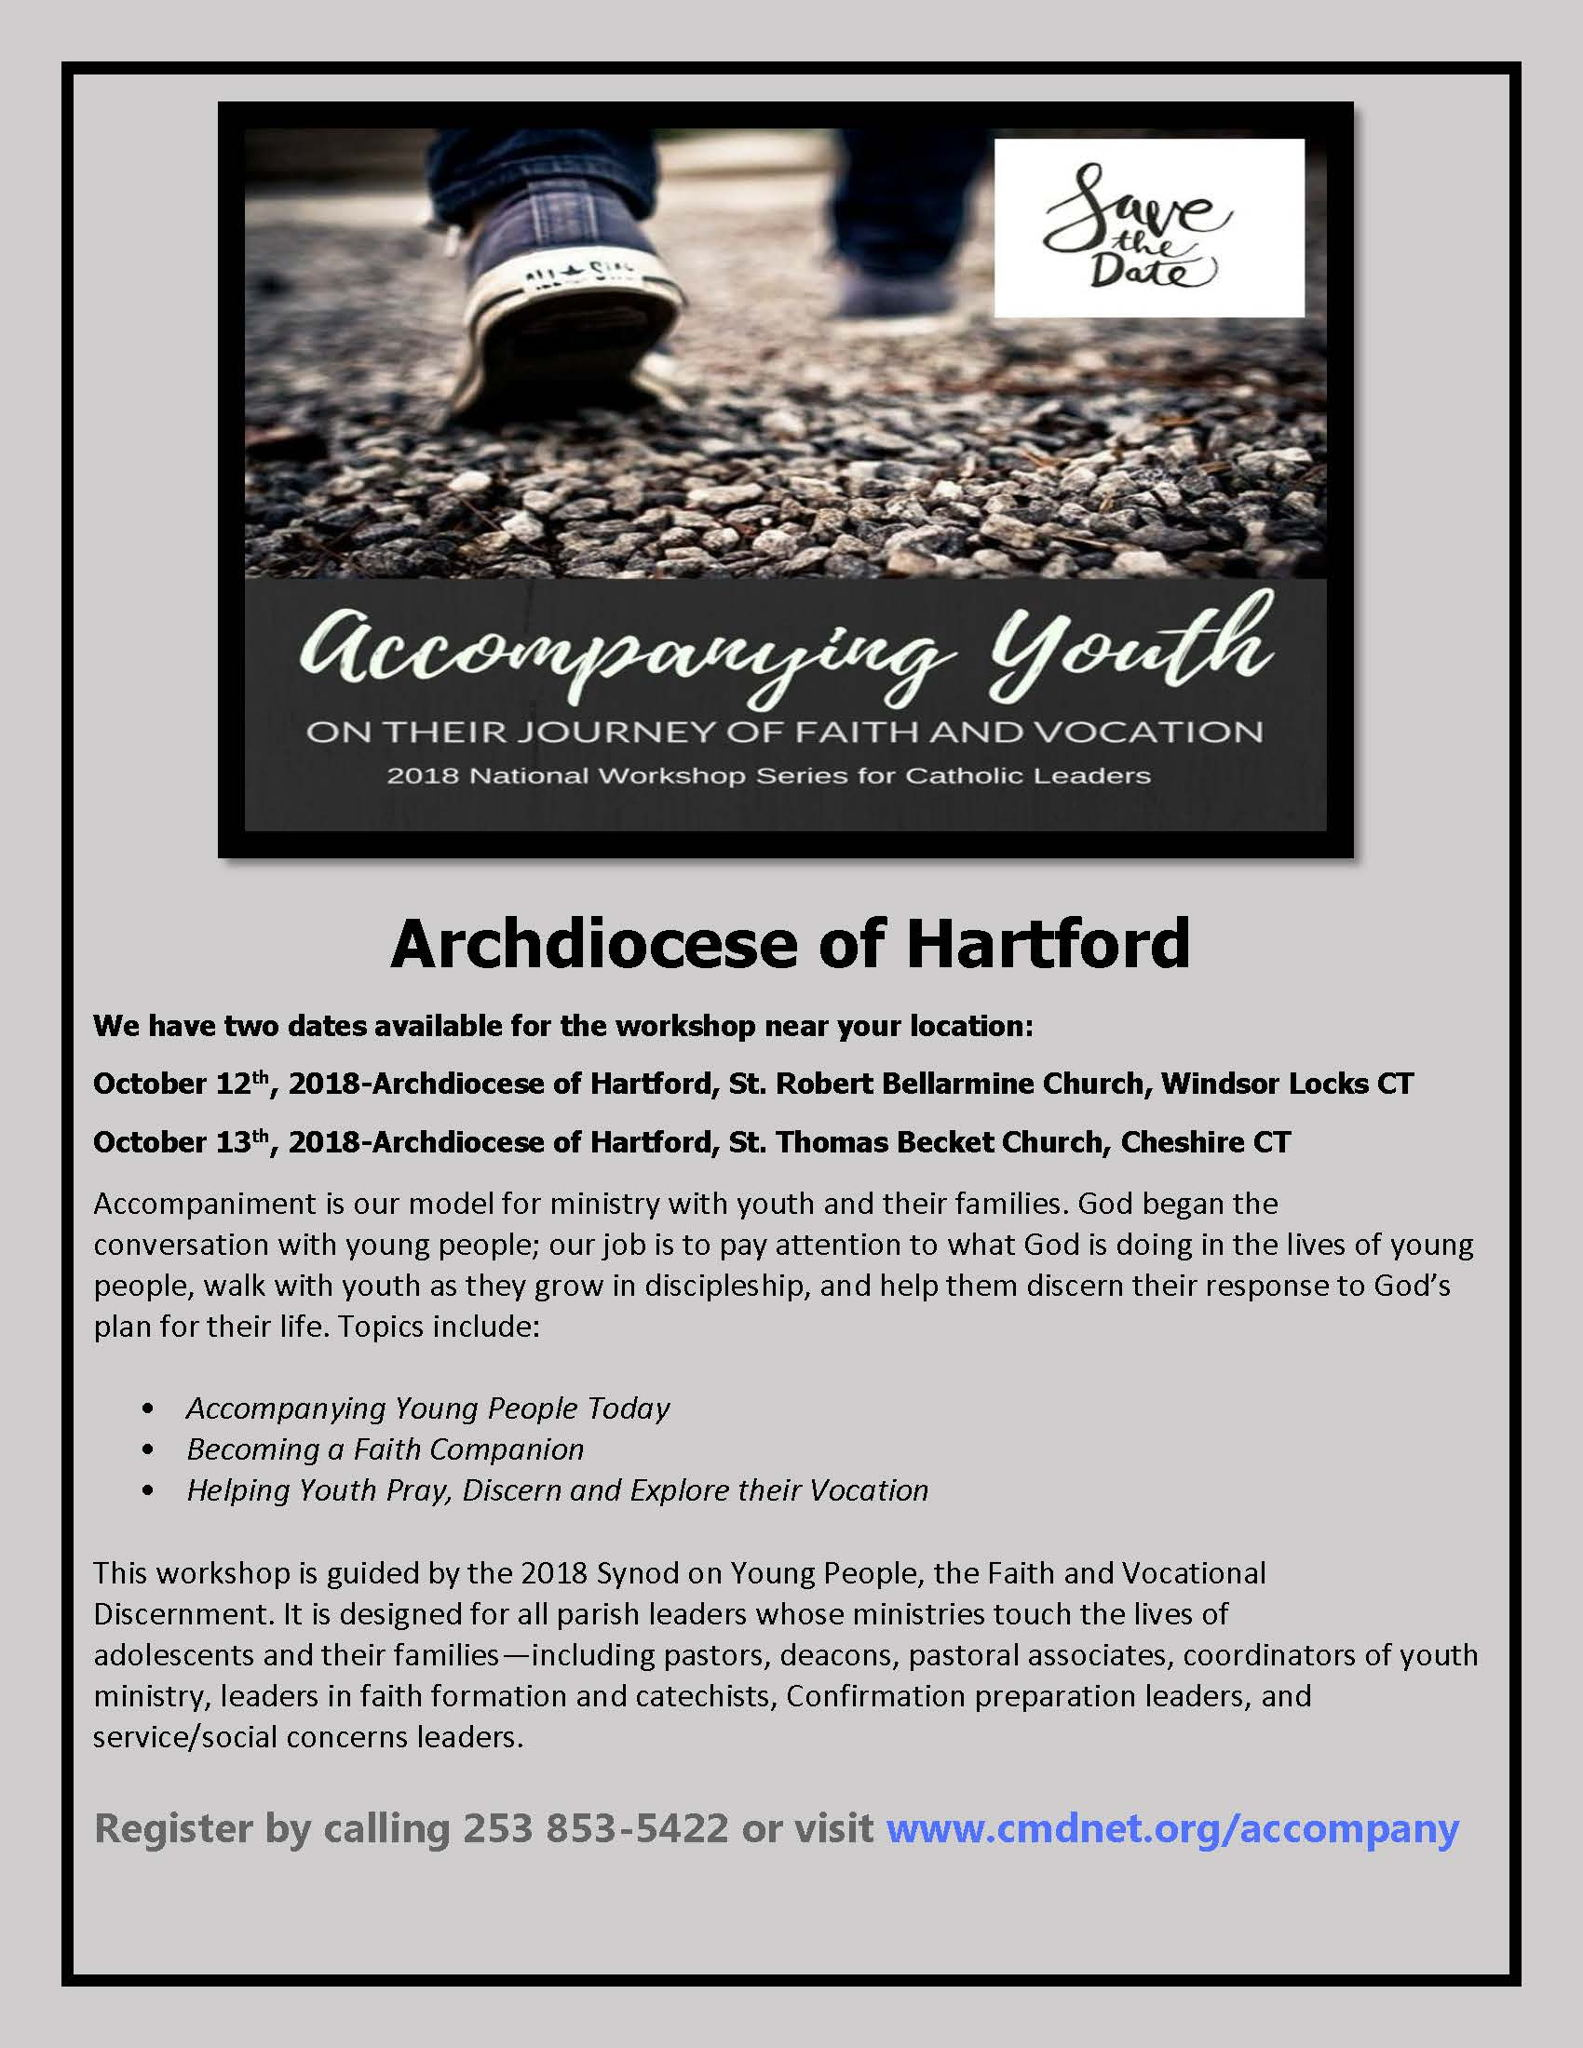 Accompany Youth Flyer - Both Dates Arch of Hartford 2018.jpg